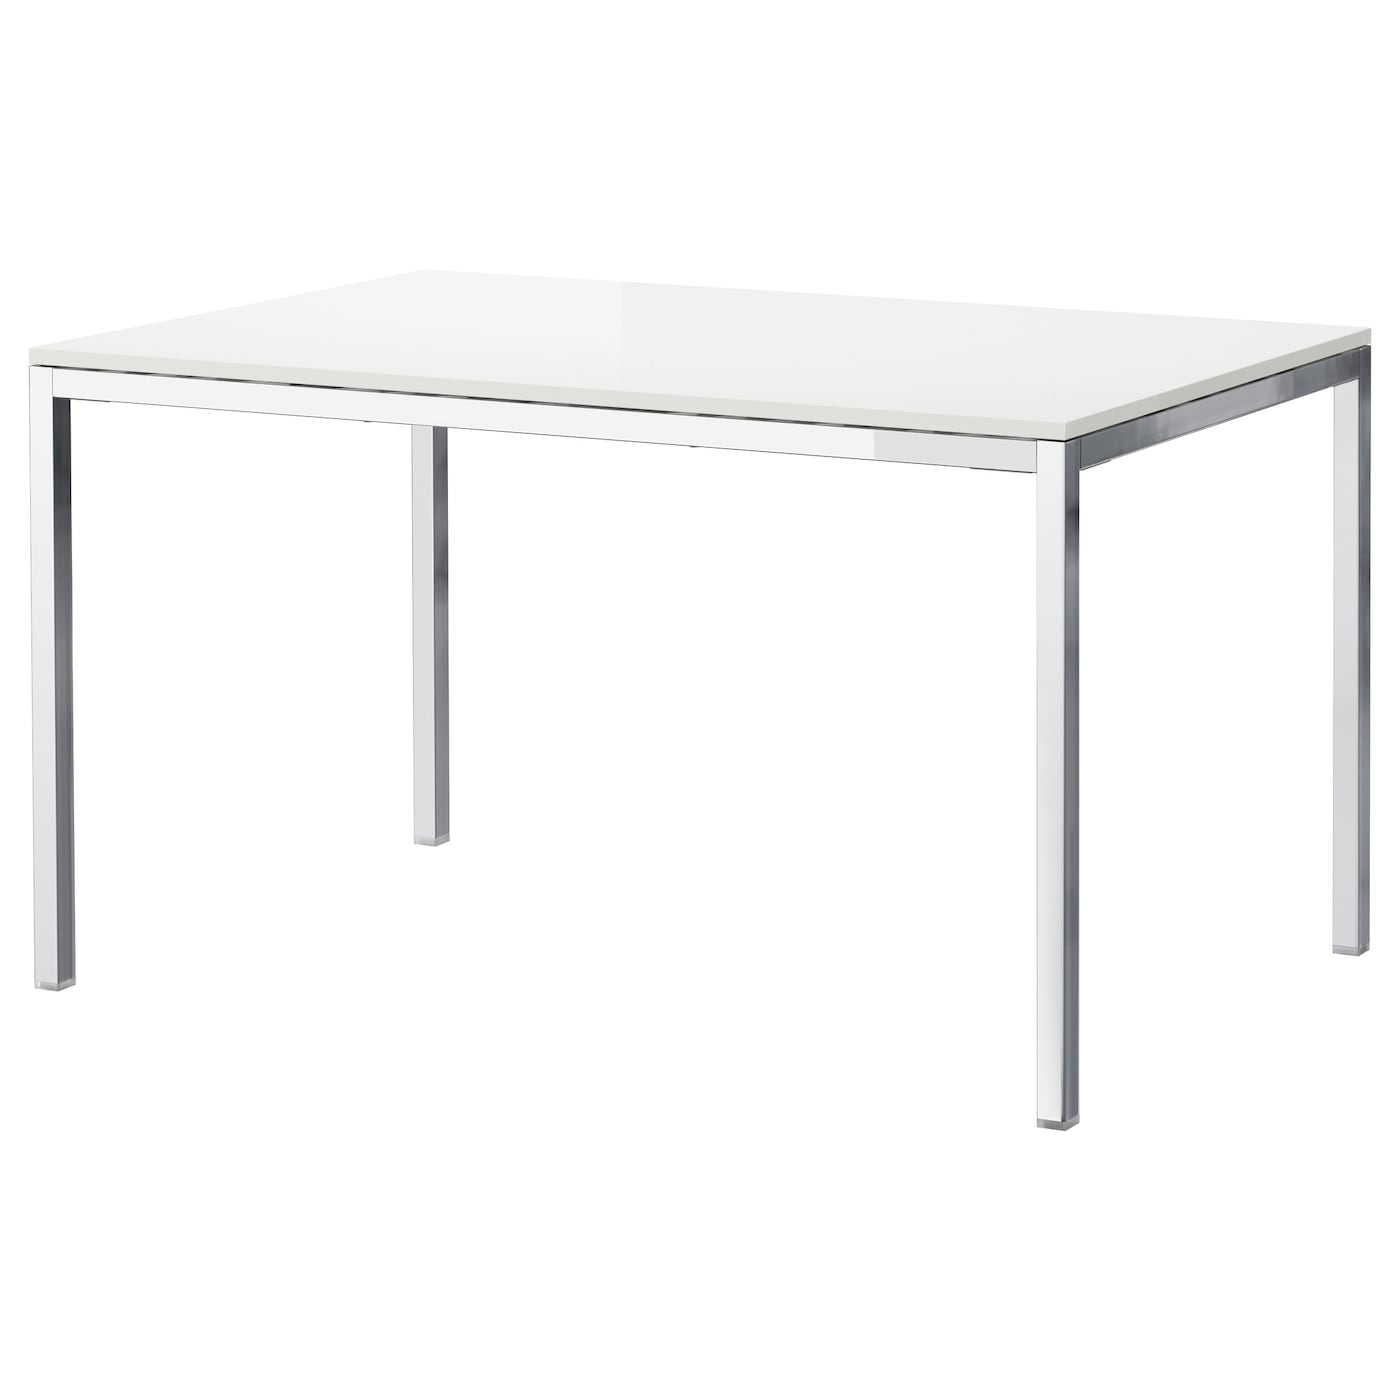 Torsby table chrome plated high gloss white 135x85 cm ikea - Table ronde en bois ikea ...